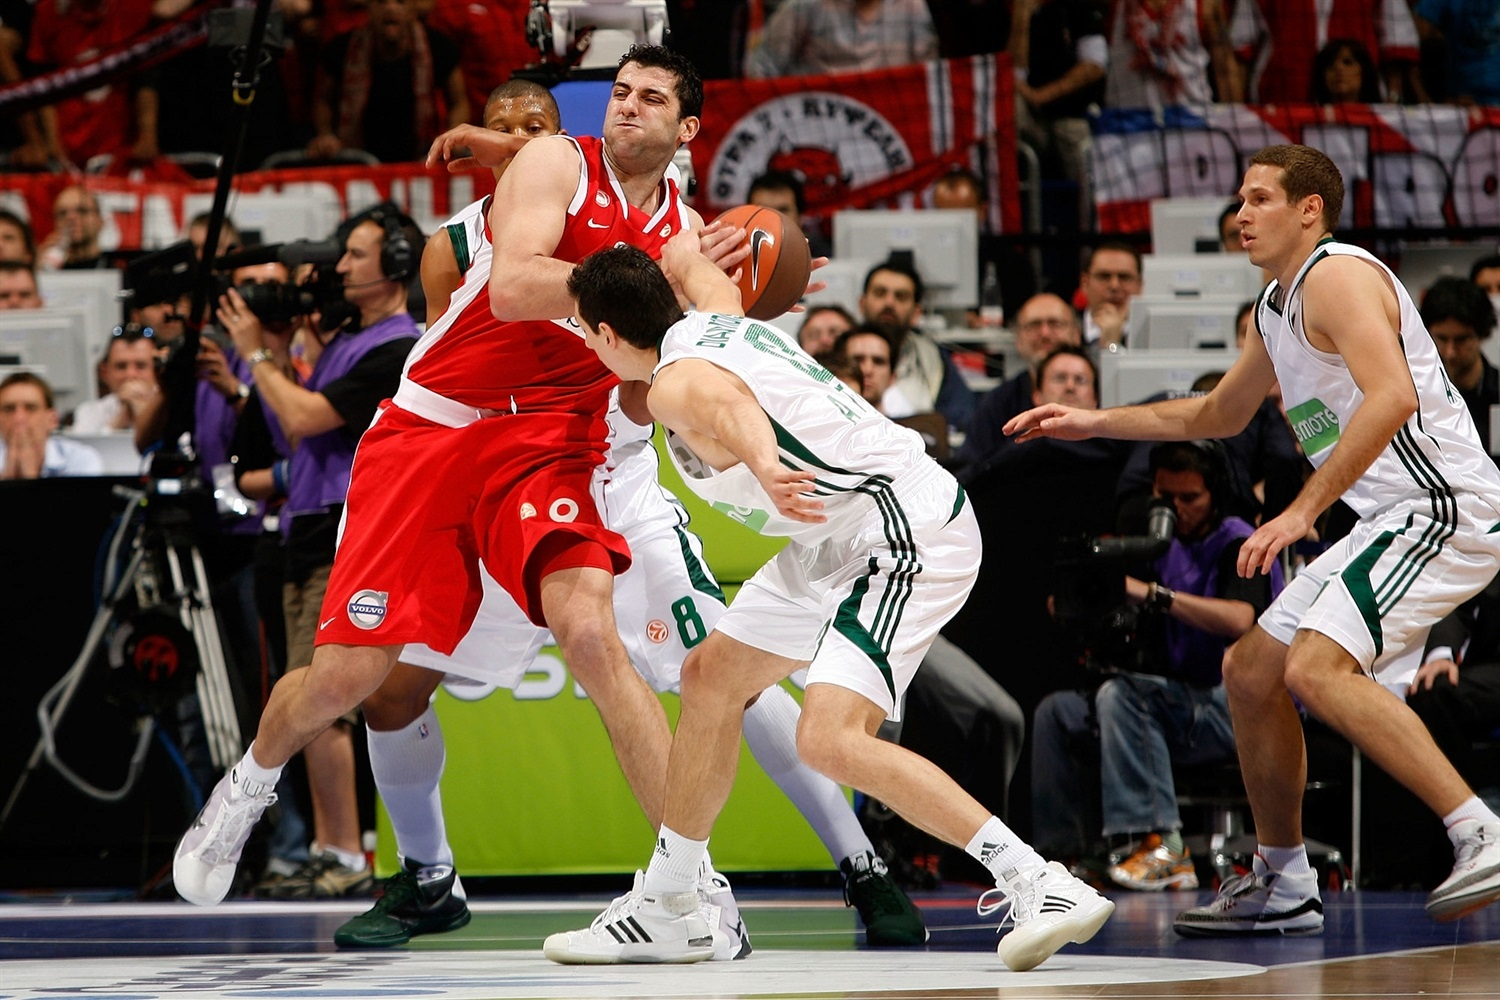 Ioannis Bourousis - Olympiacos Piraeus - Final Four Berlin 2009 - EB08